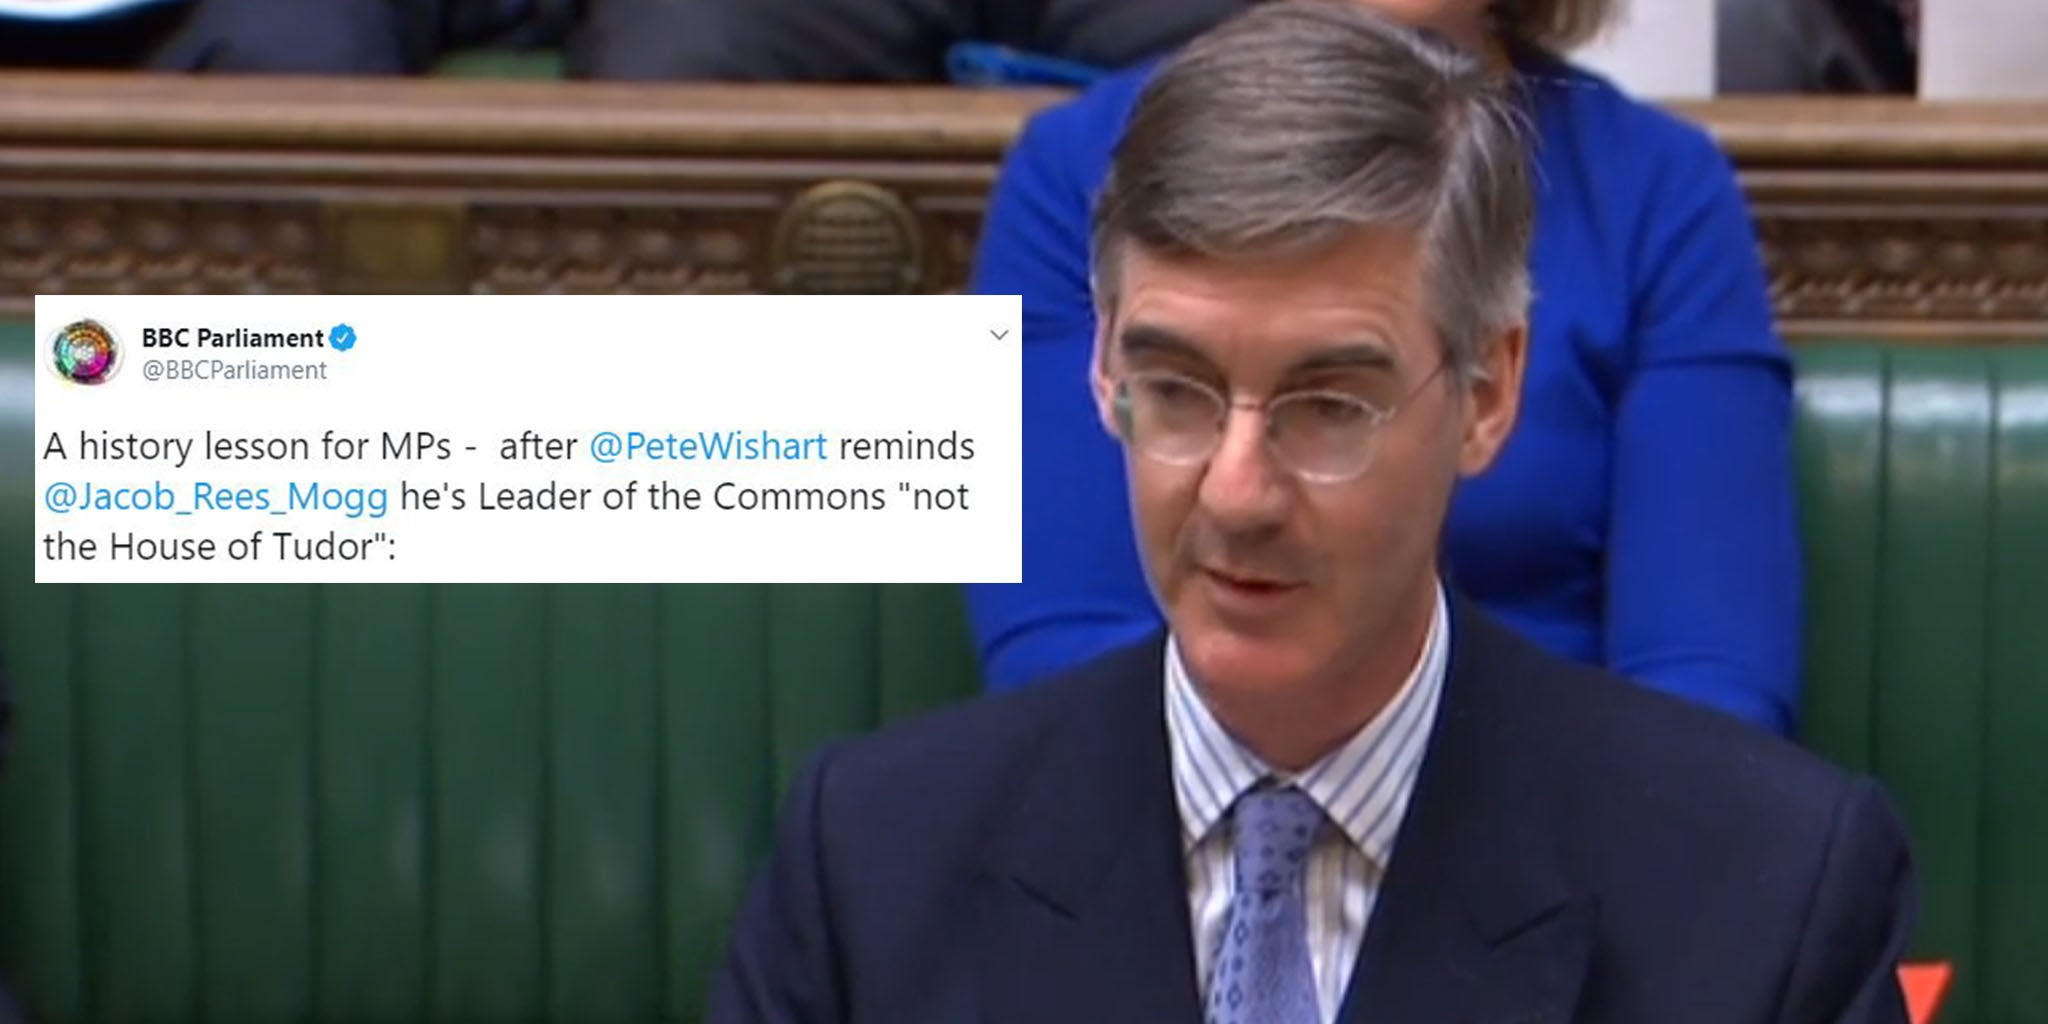 Jacob Rees-Mogg: House of Commons leader gives Tudor history